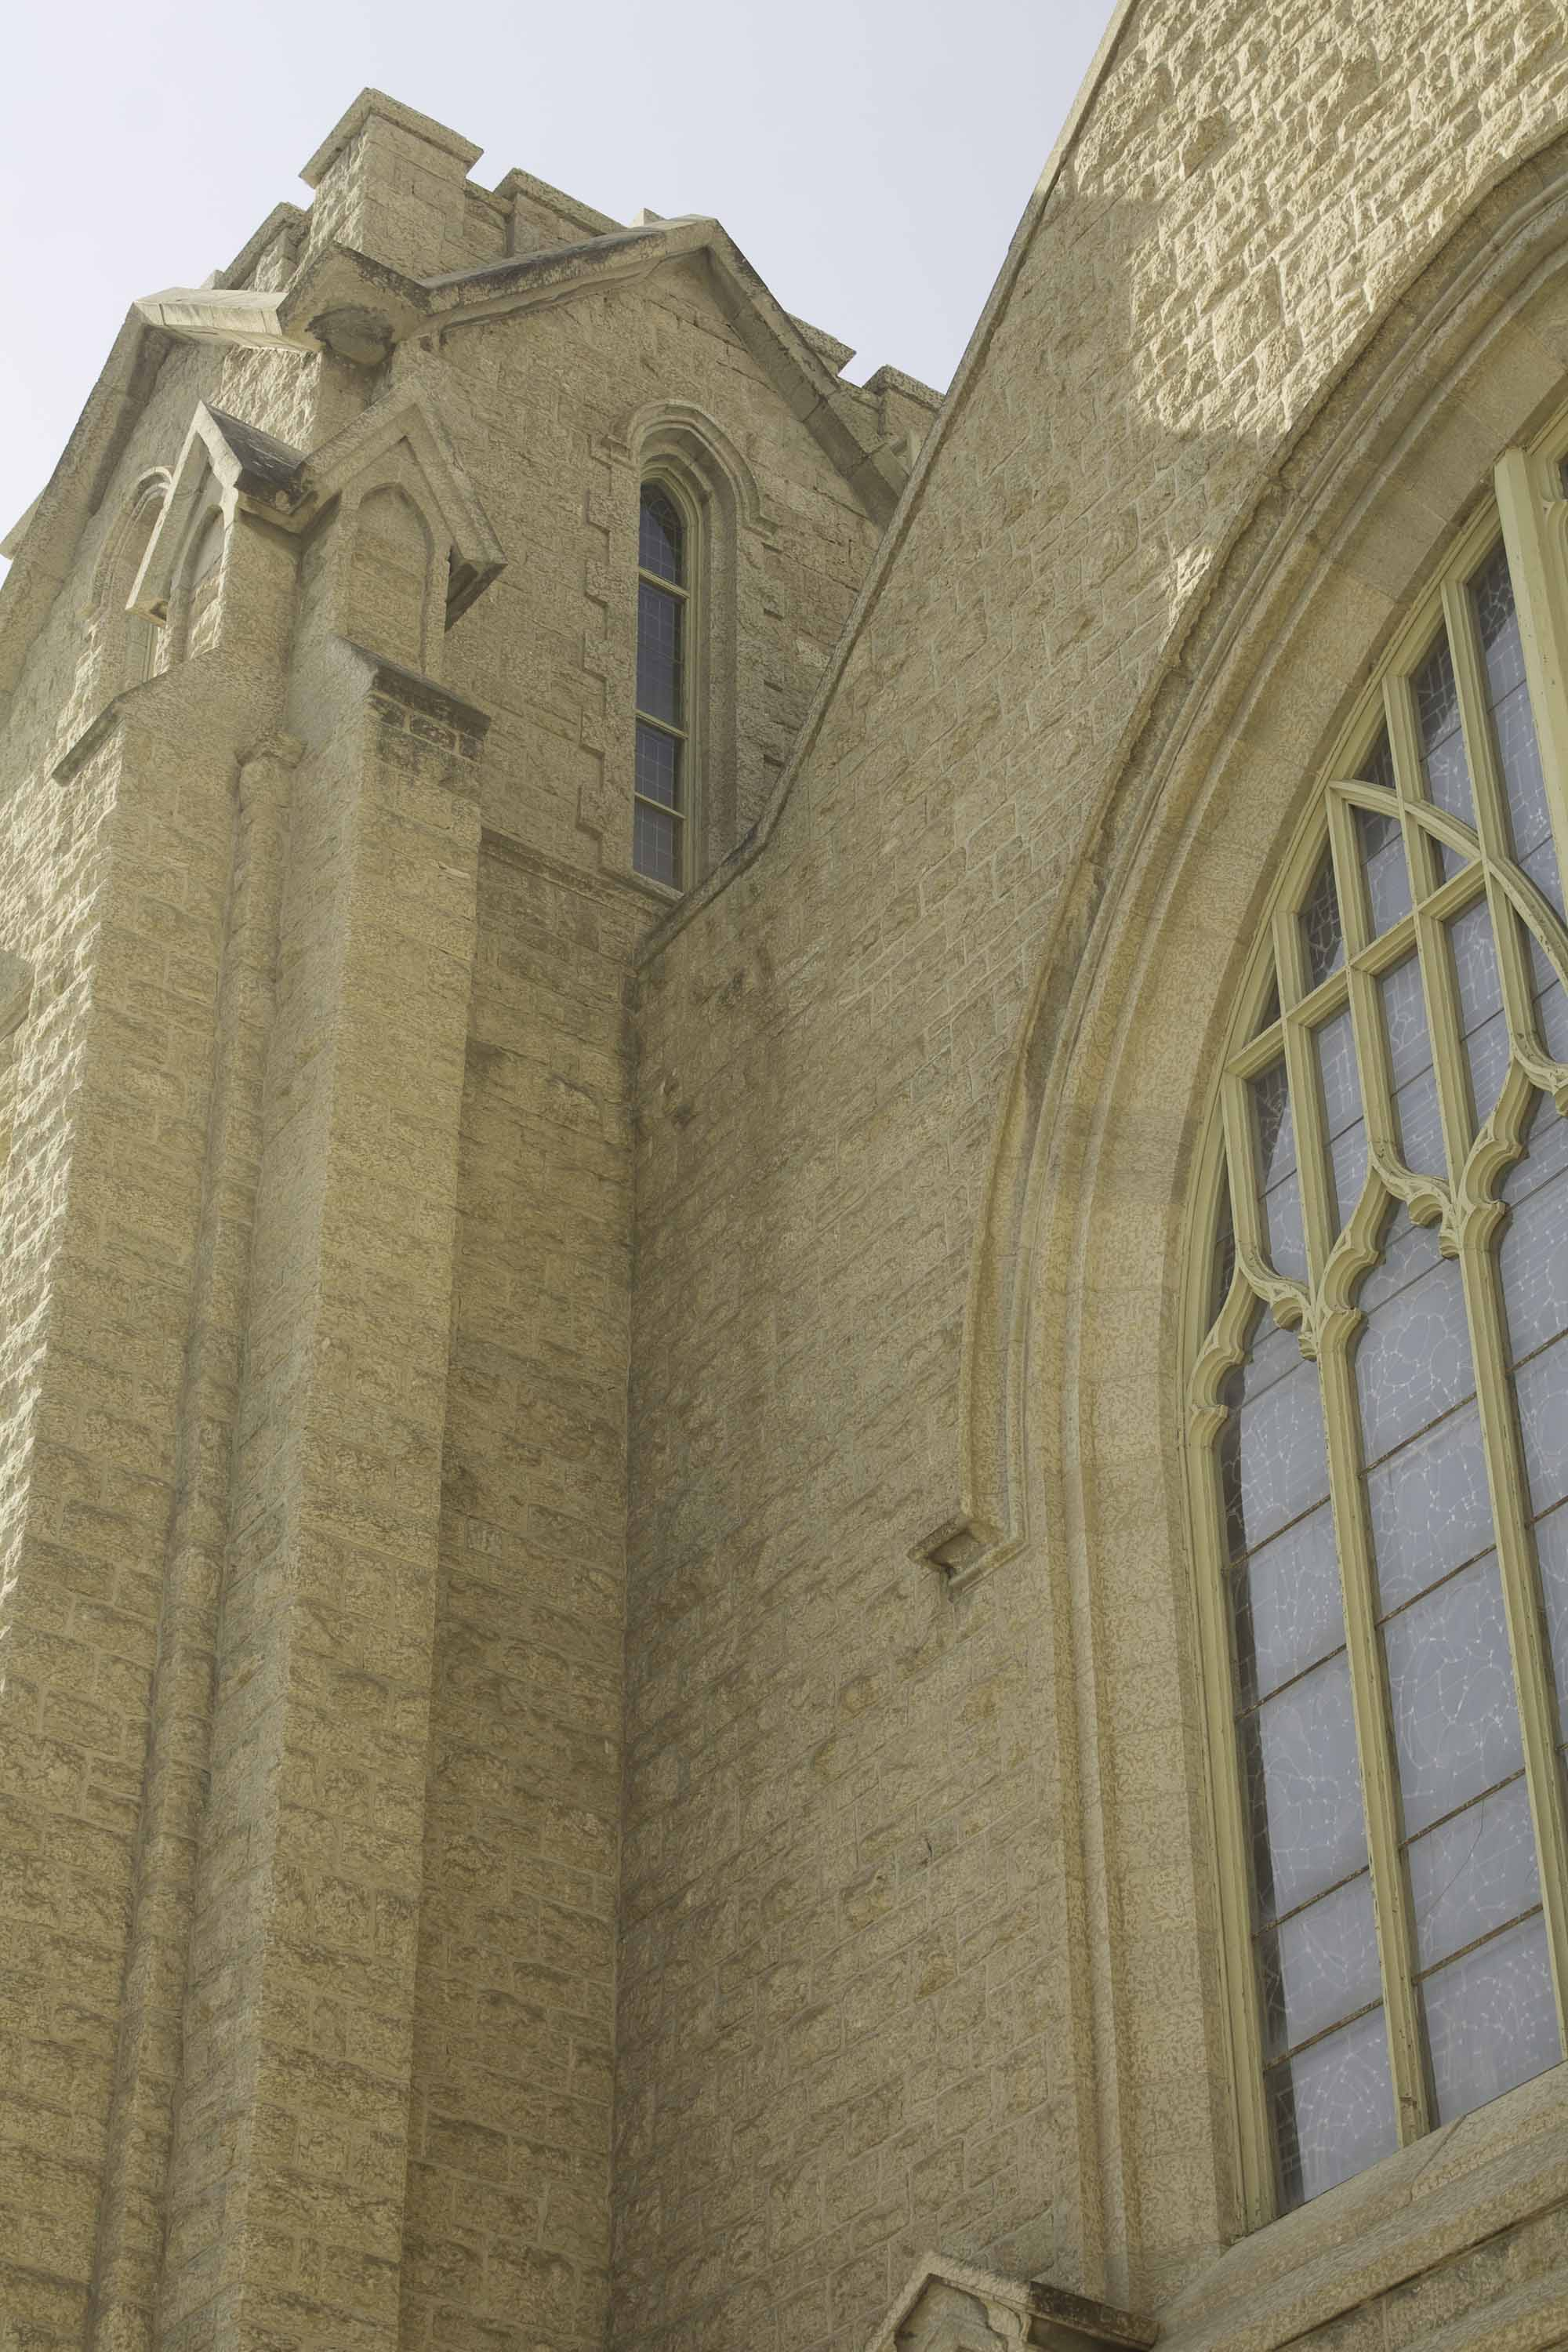 A church in Moose Jaw, Saskatchewan